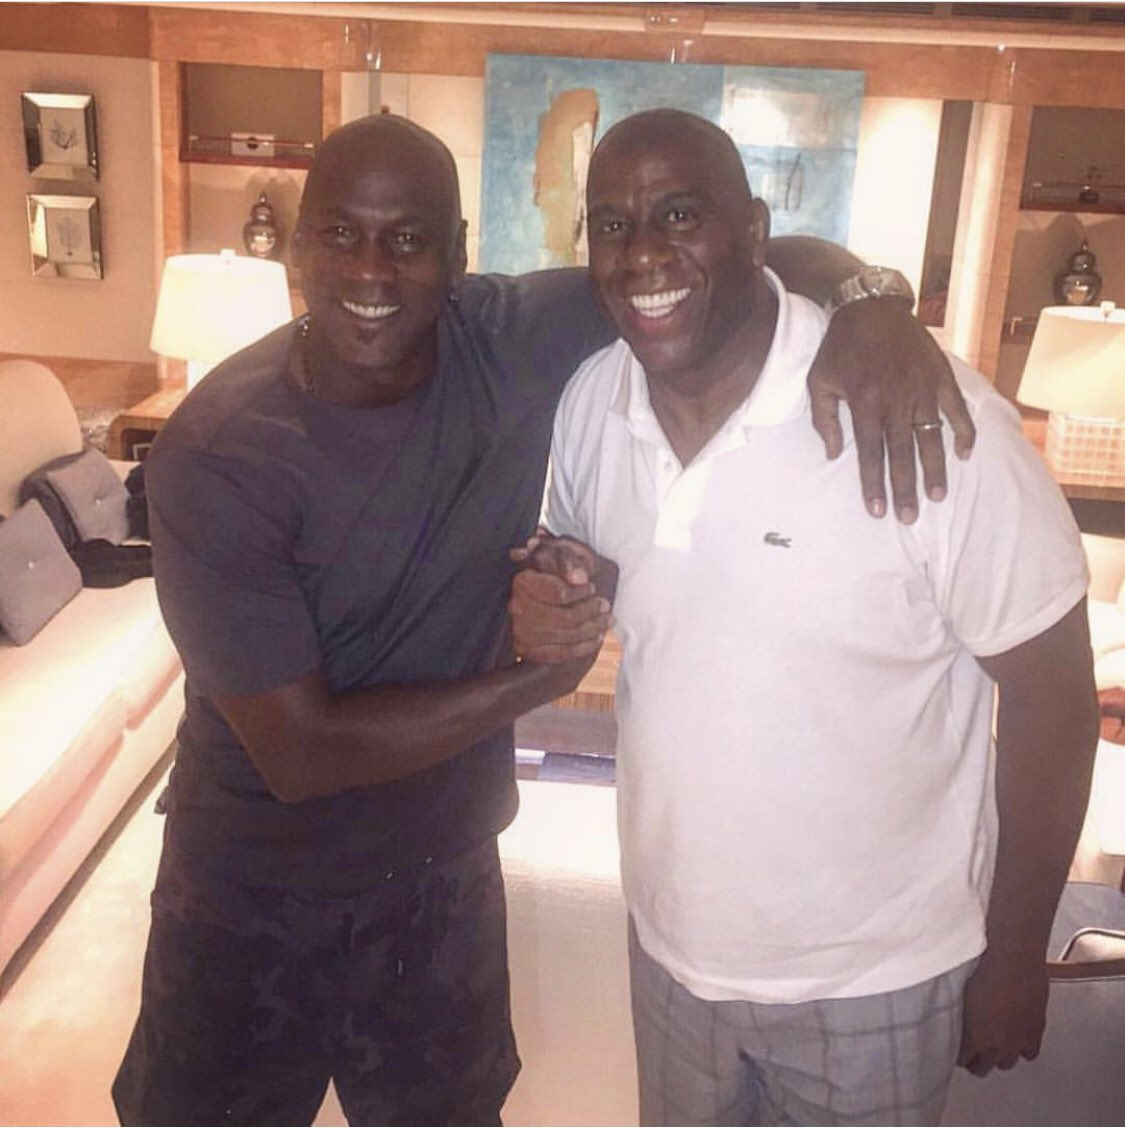 I have never encountered two competitors like these two. Whether it be on the basketball court or playing cards: Tonk or Bid Whist, You think you know MJ and Magic Hmmm. You have to meet Micheal and Earvin.  Maniacal might be a good description playing cards! 😊😊😬.